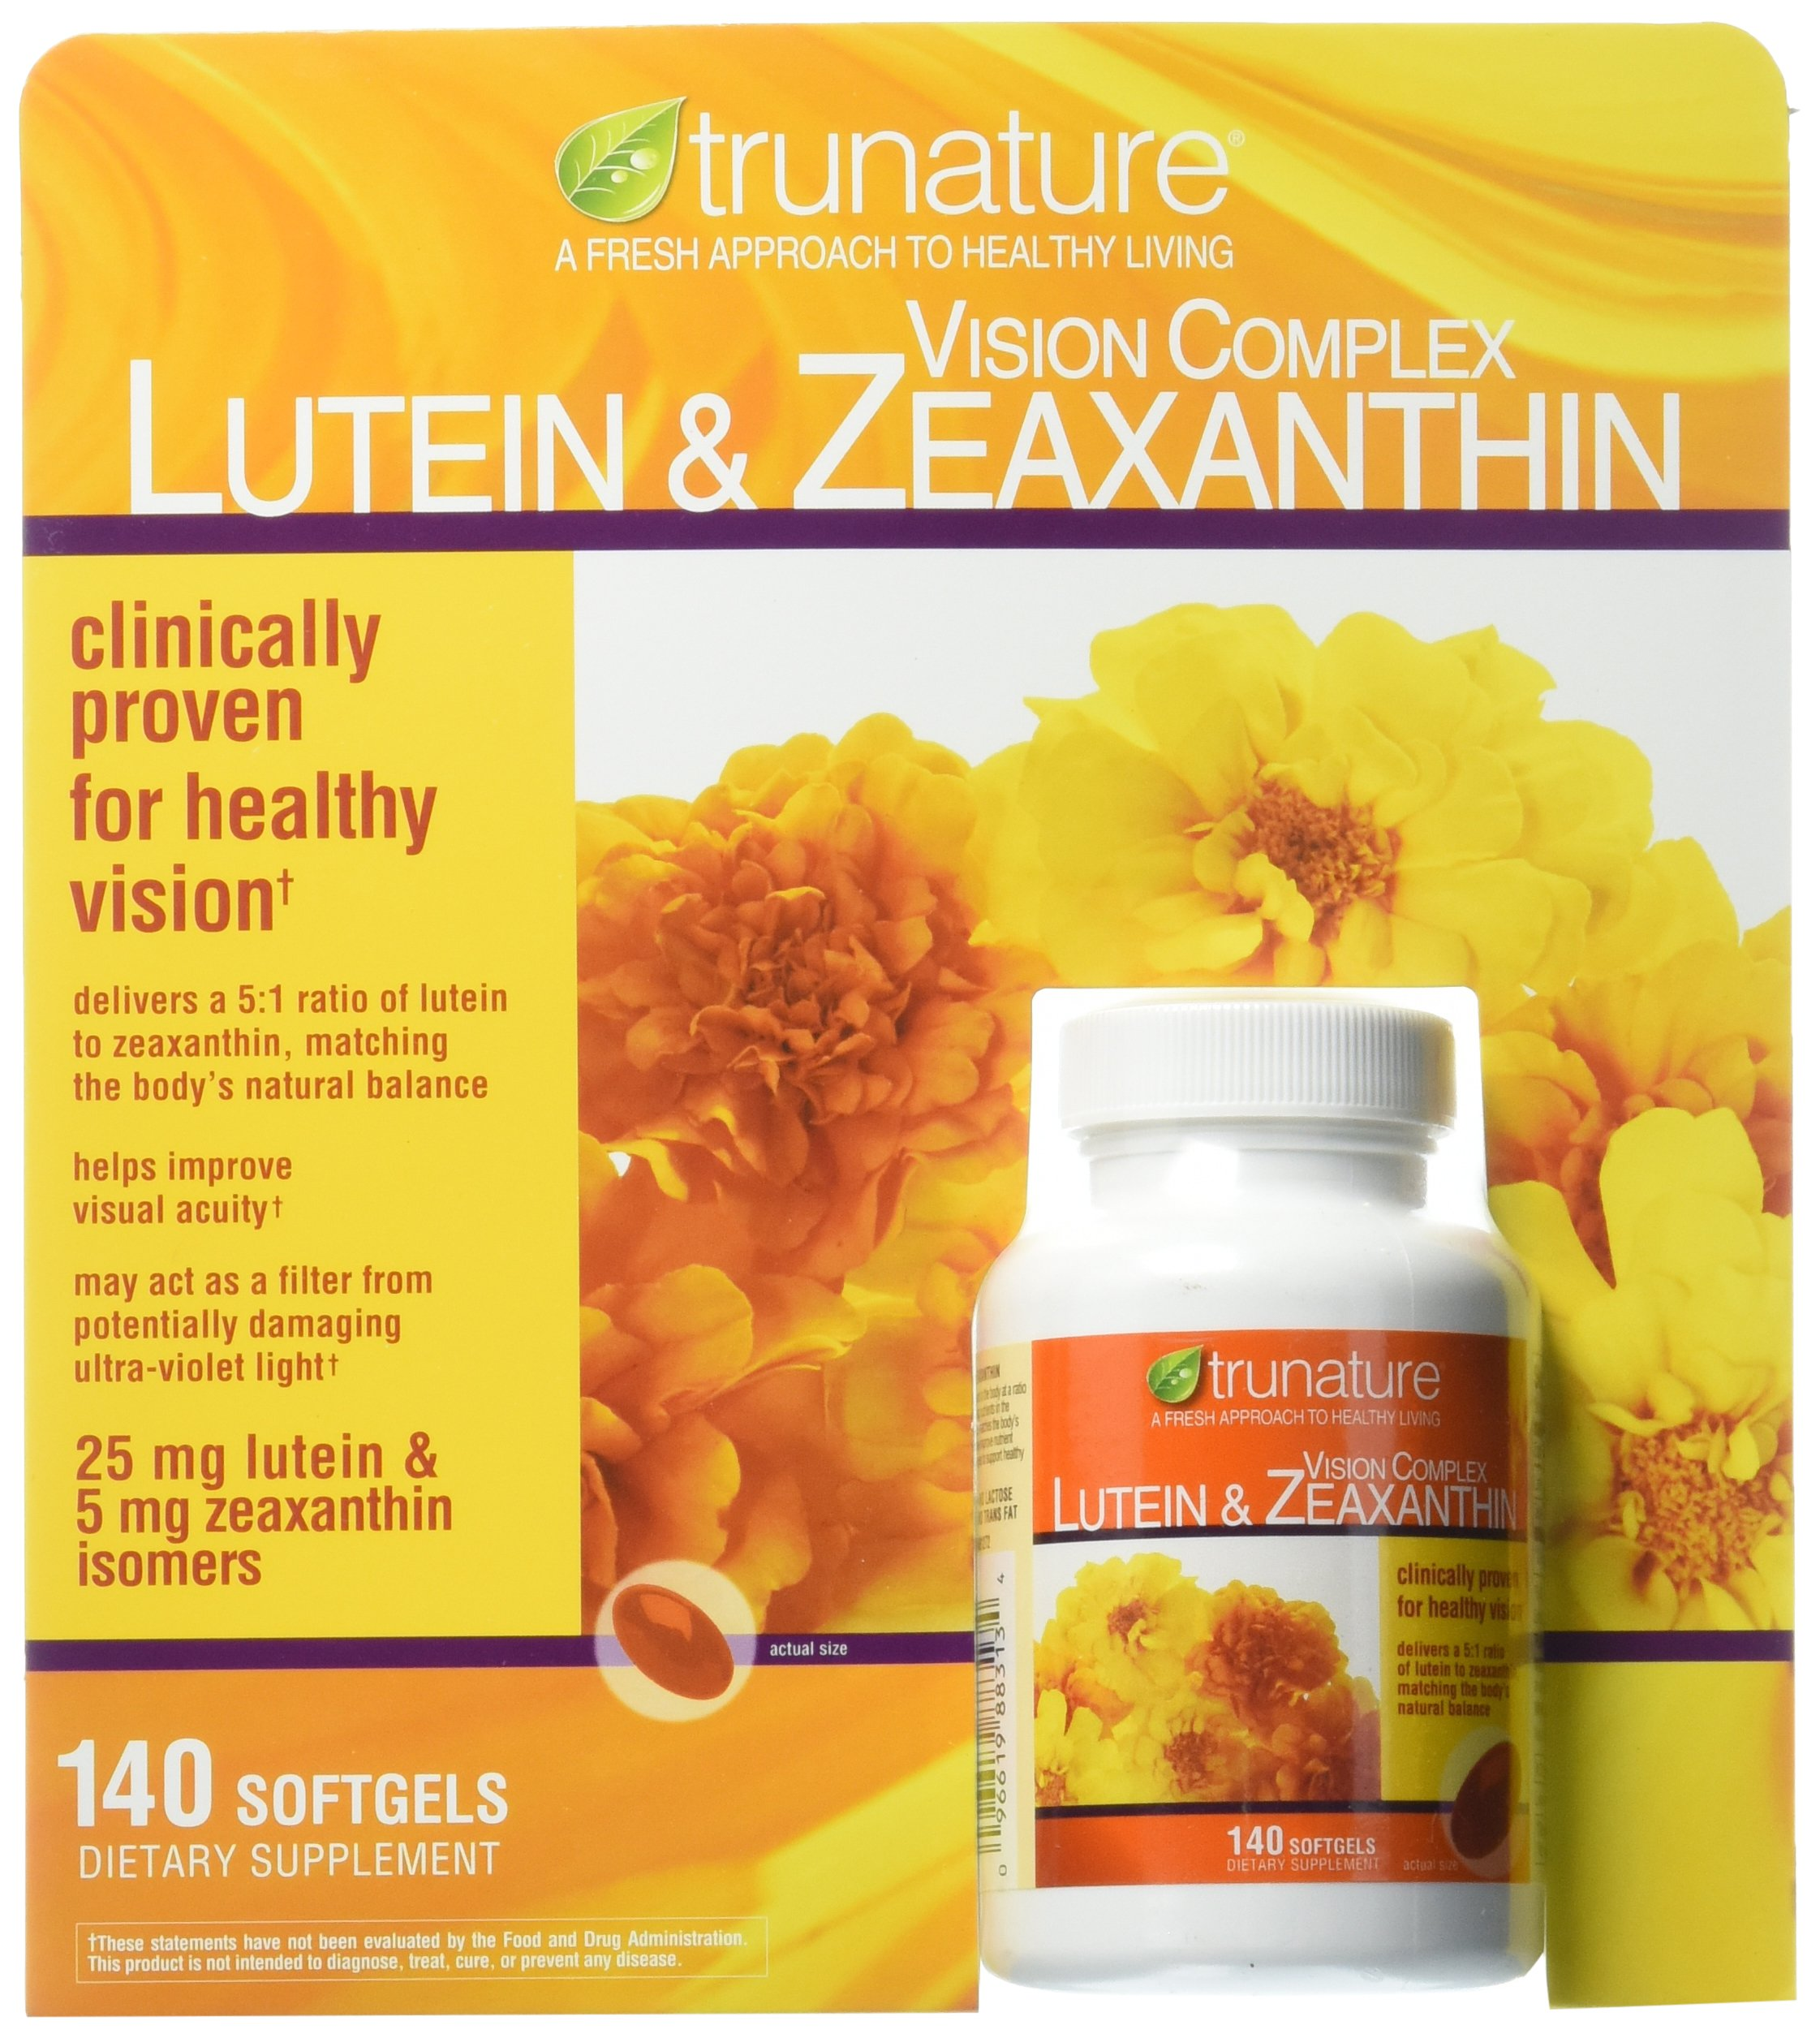 Trunature Vision Softgels Complex Lutein and Zeaxanthin Supplement, 140 Count by TruNature